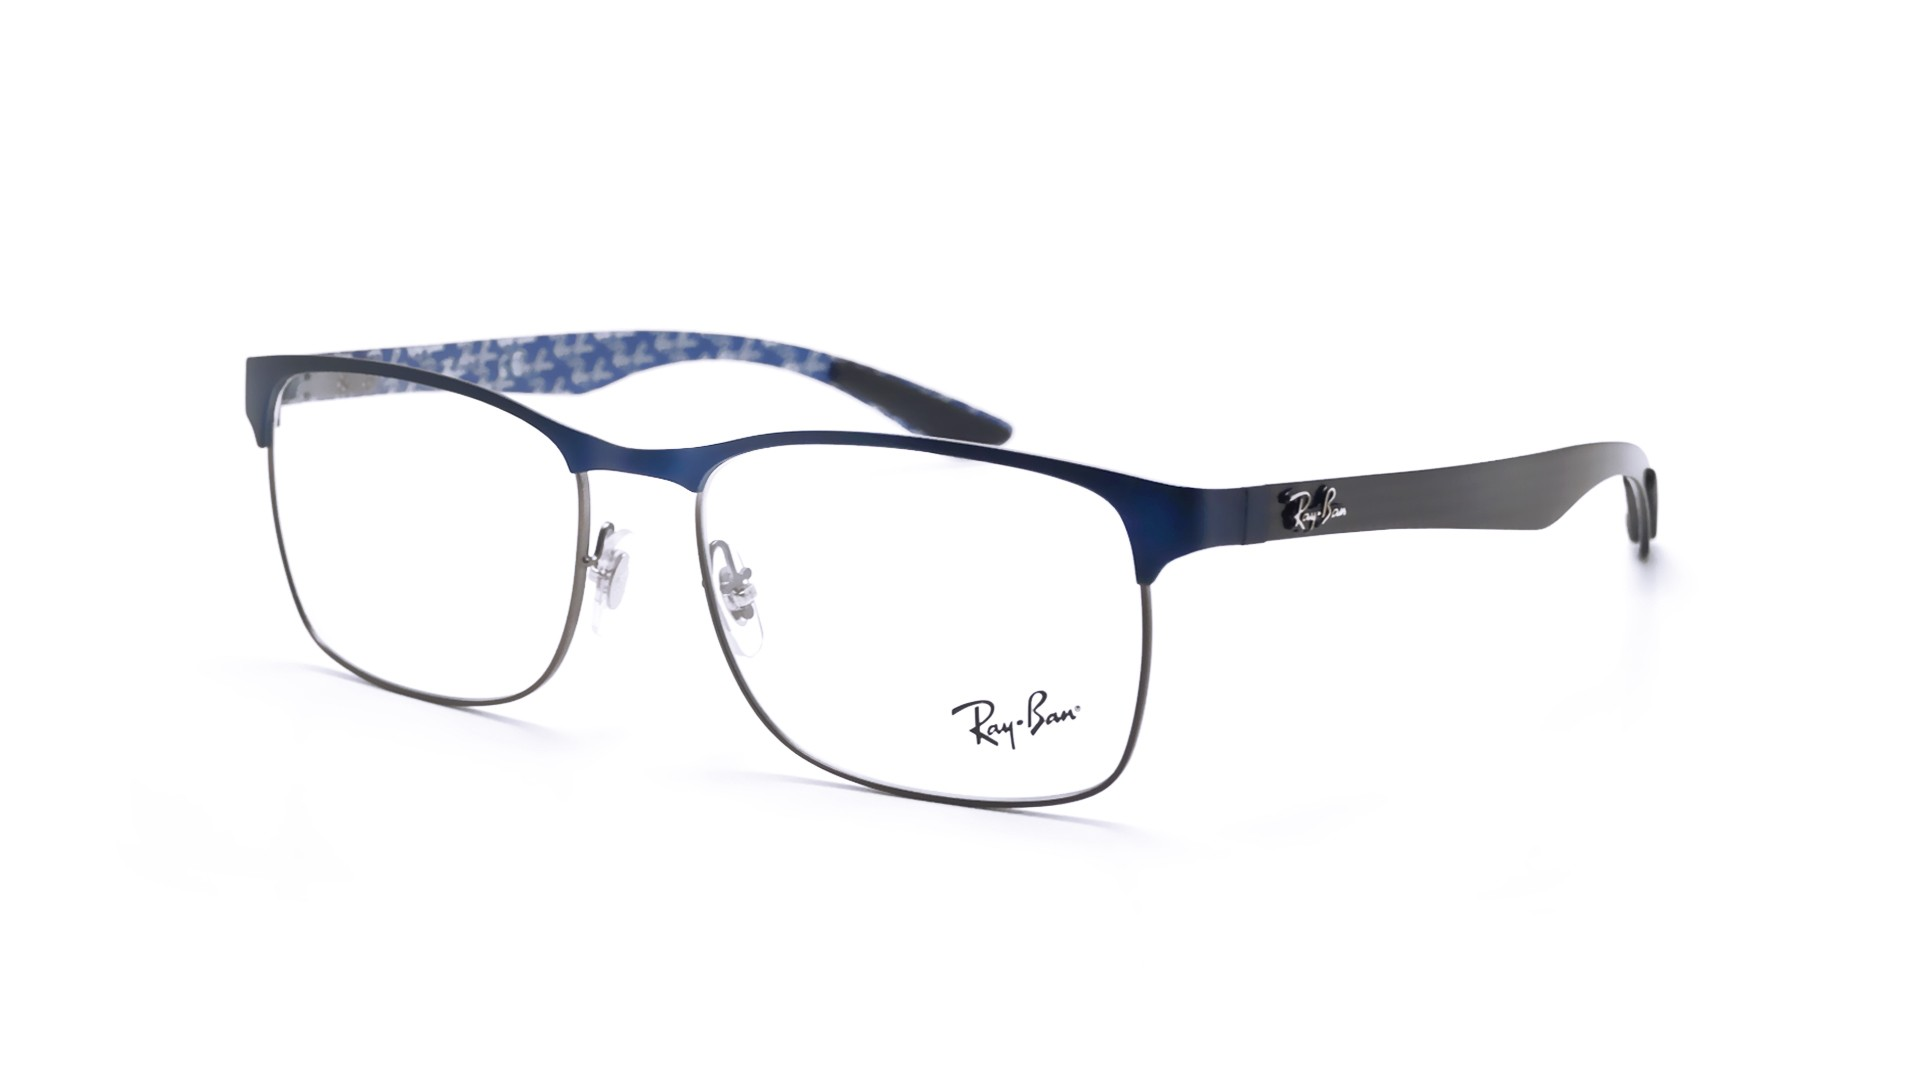 ab34f5995f Eyeglasses Ray-Ban RX8416 RB8416 2914 55-17 Blue Matte Medium